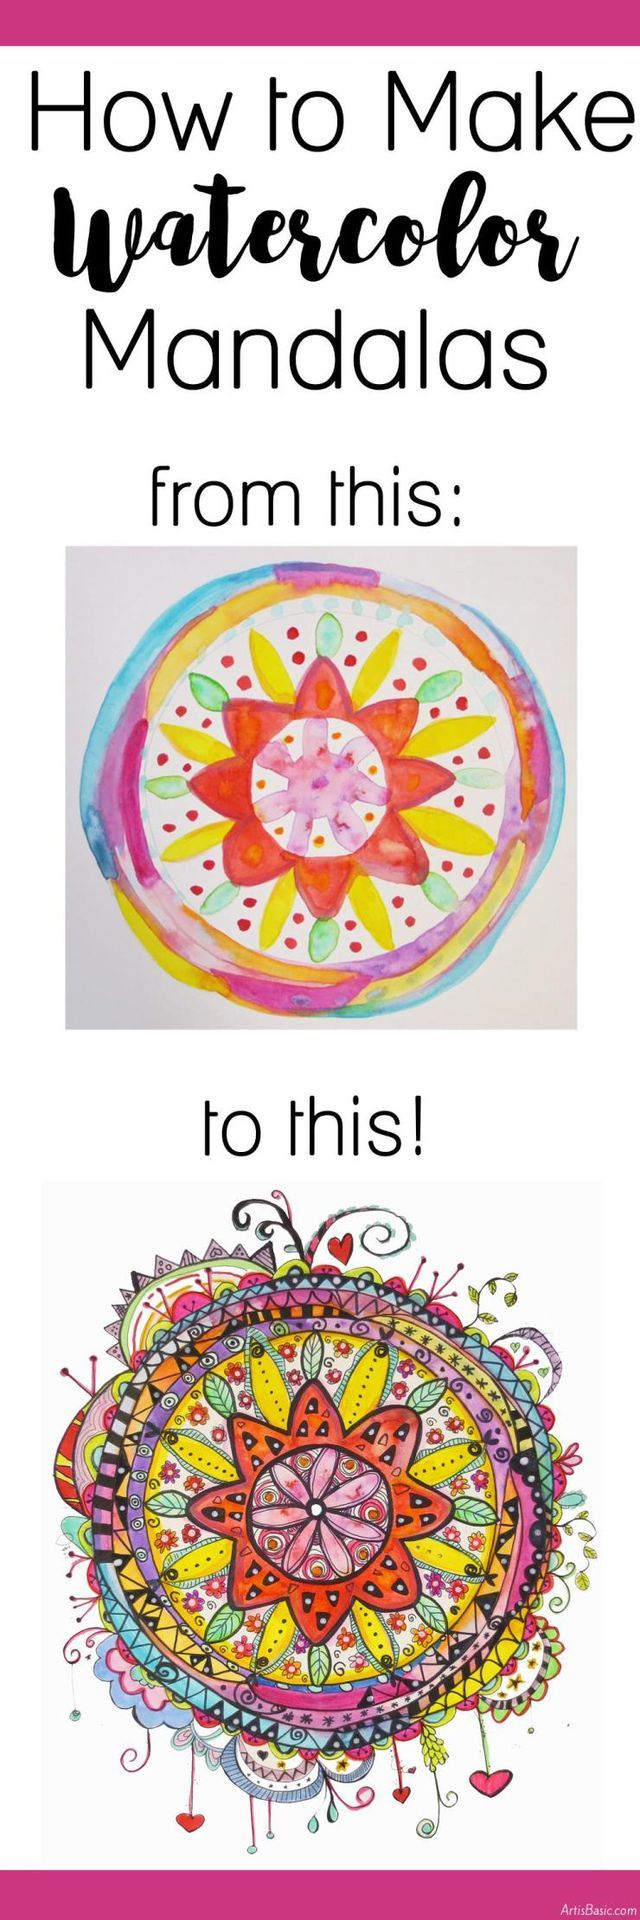 Earlier this summer I wrote a blog post about how to make watercolor doodled flo...